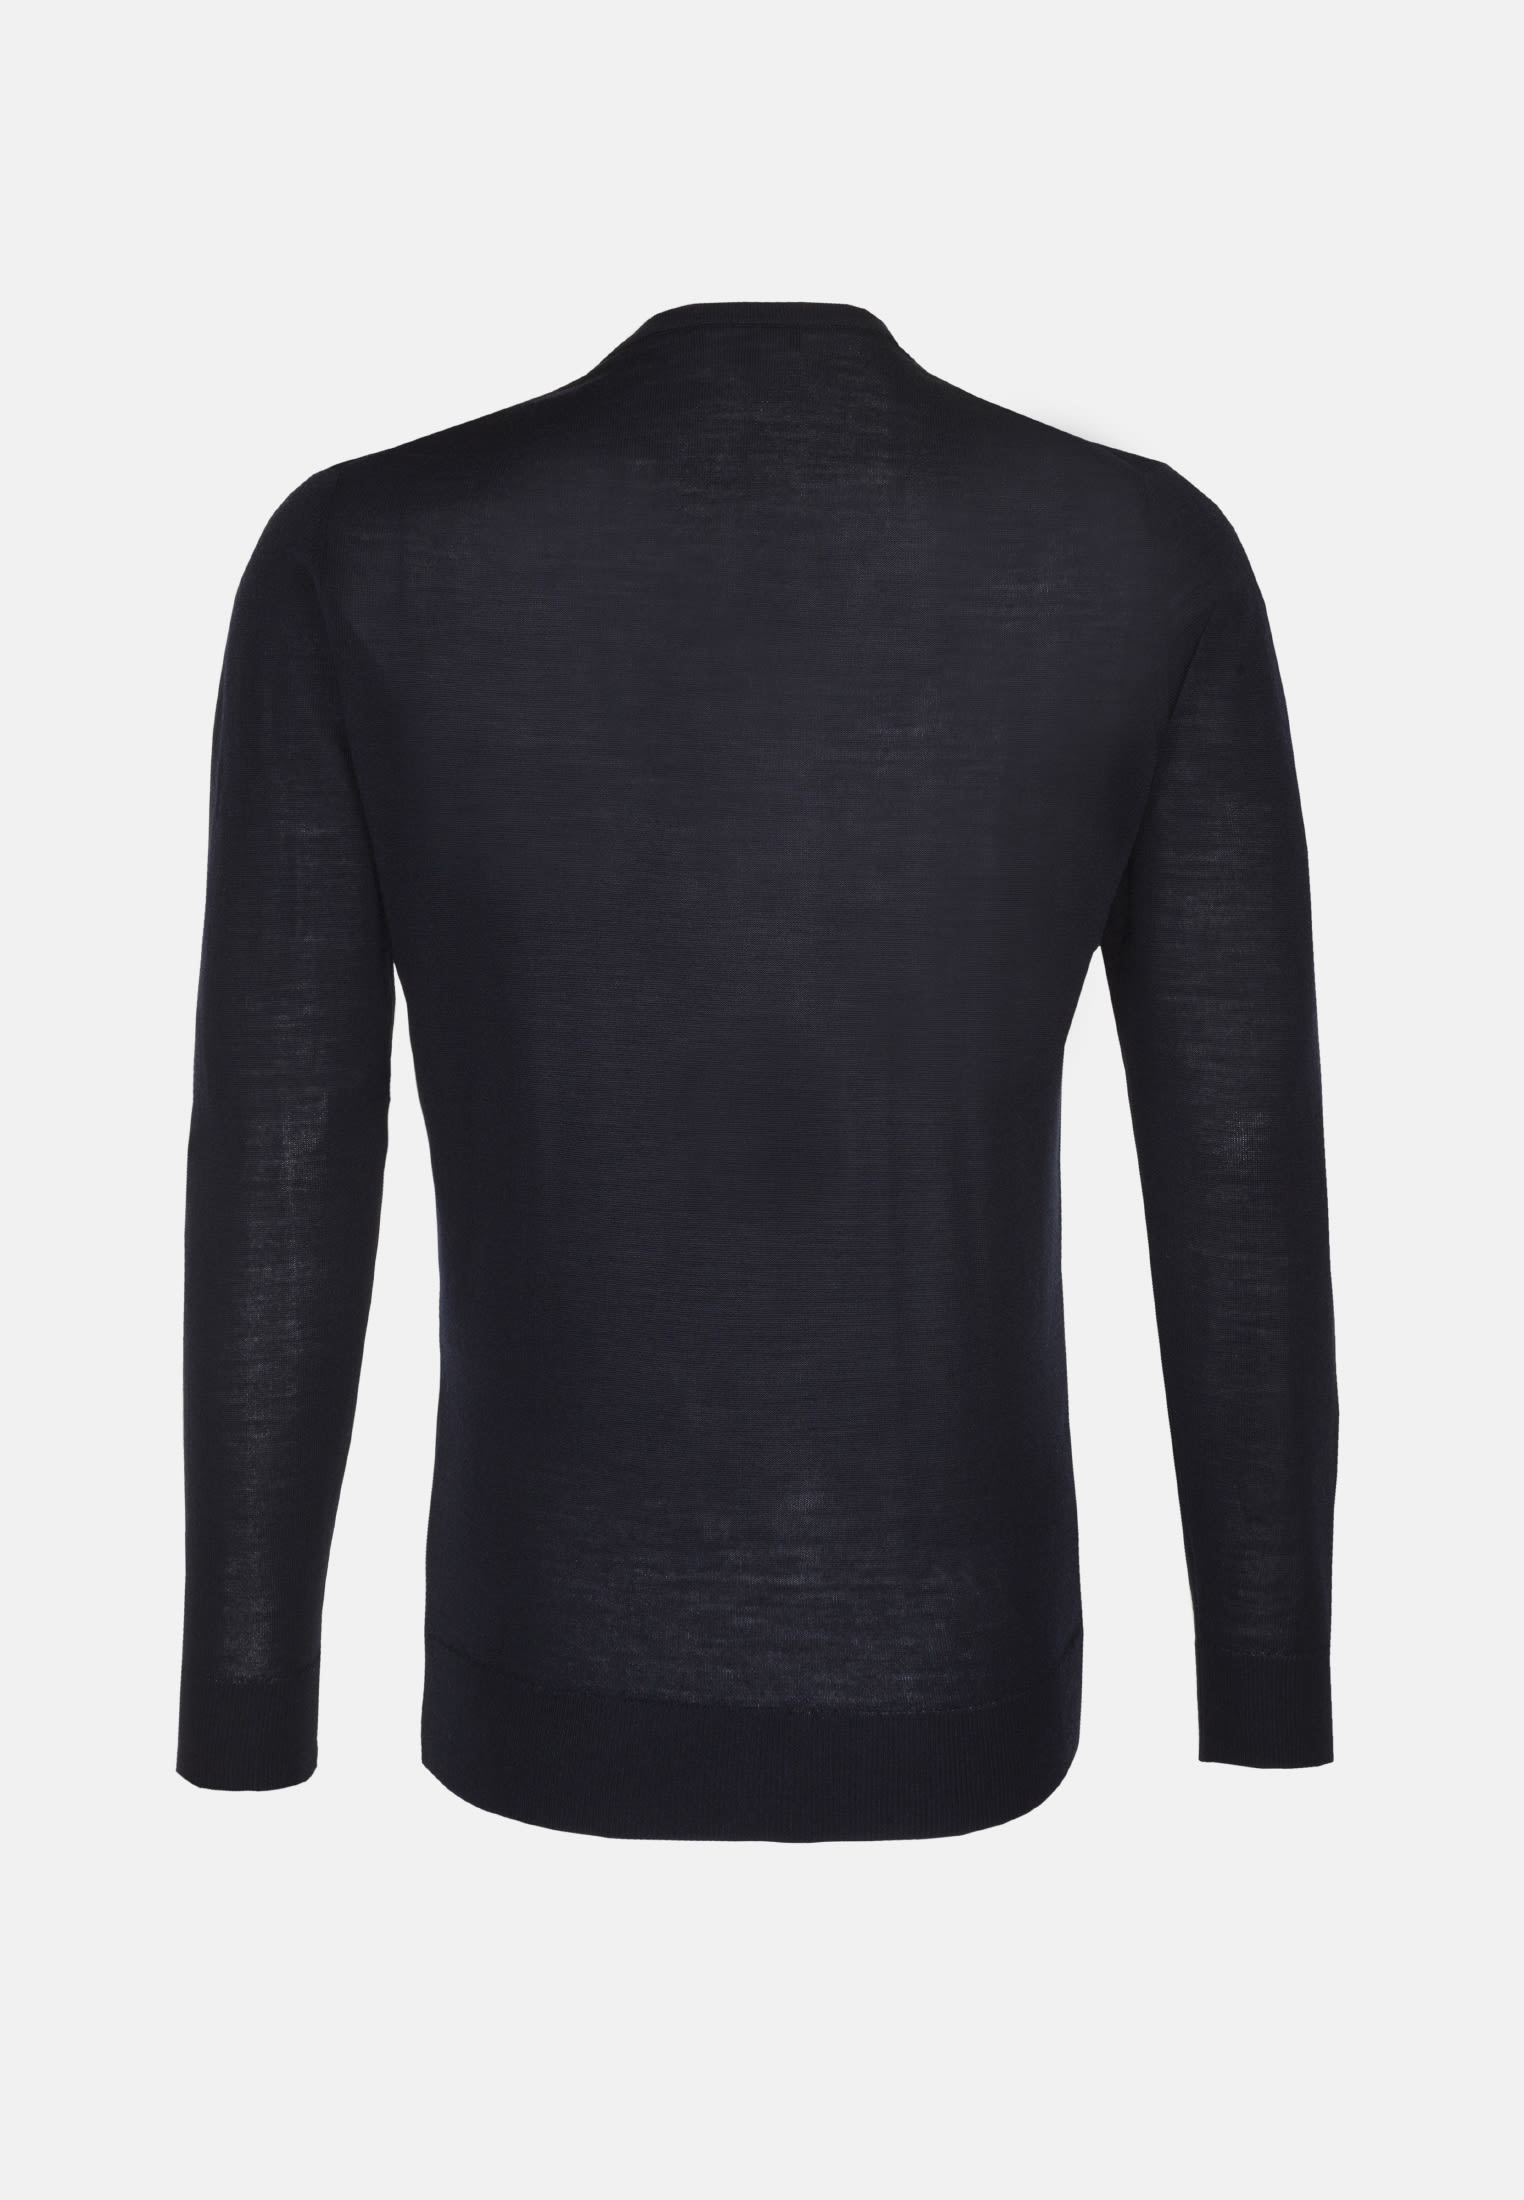 Crew Neck Pullover made of 100% Wolle in navy |  Seidensticker Onlineshop